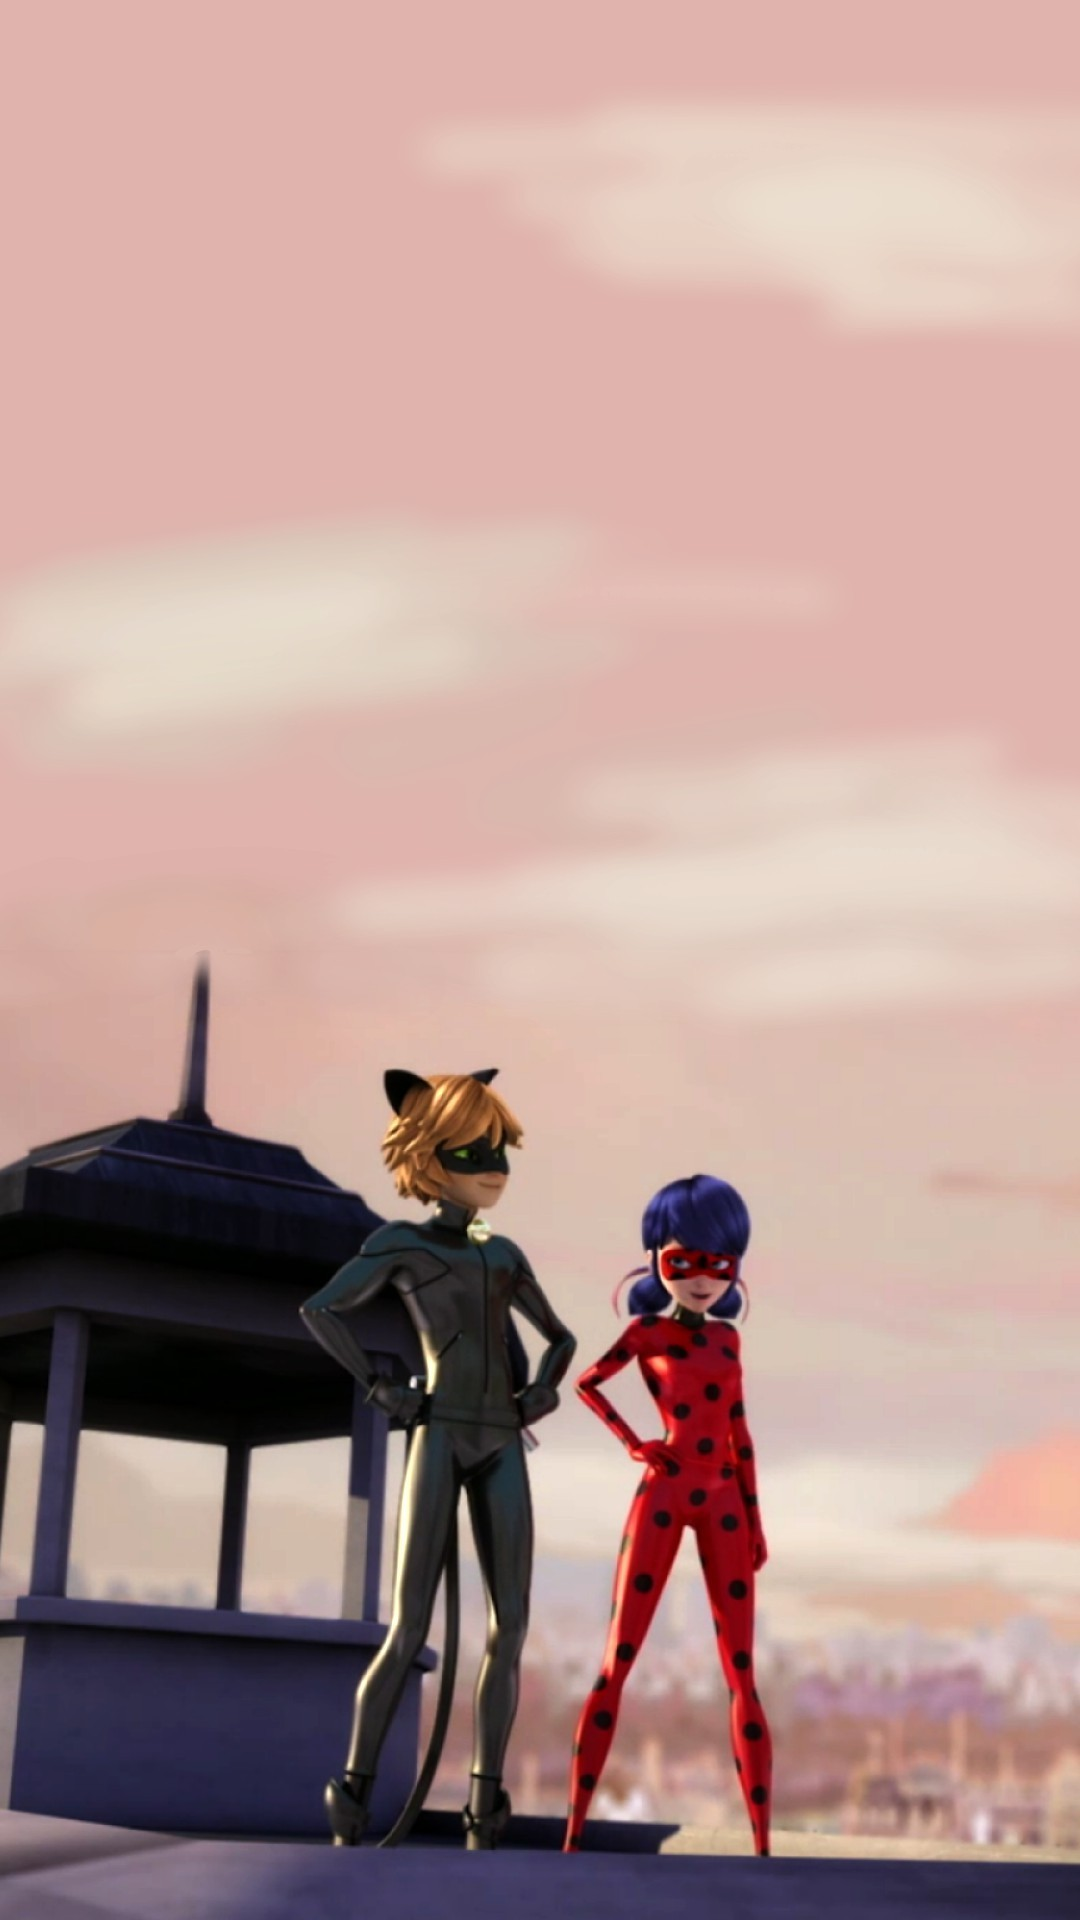 Supreme Iphone X Wallpaper Miraculous Ladybug Wallpapers 78 Images